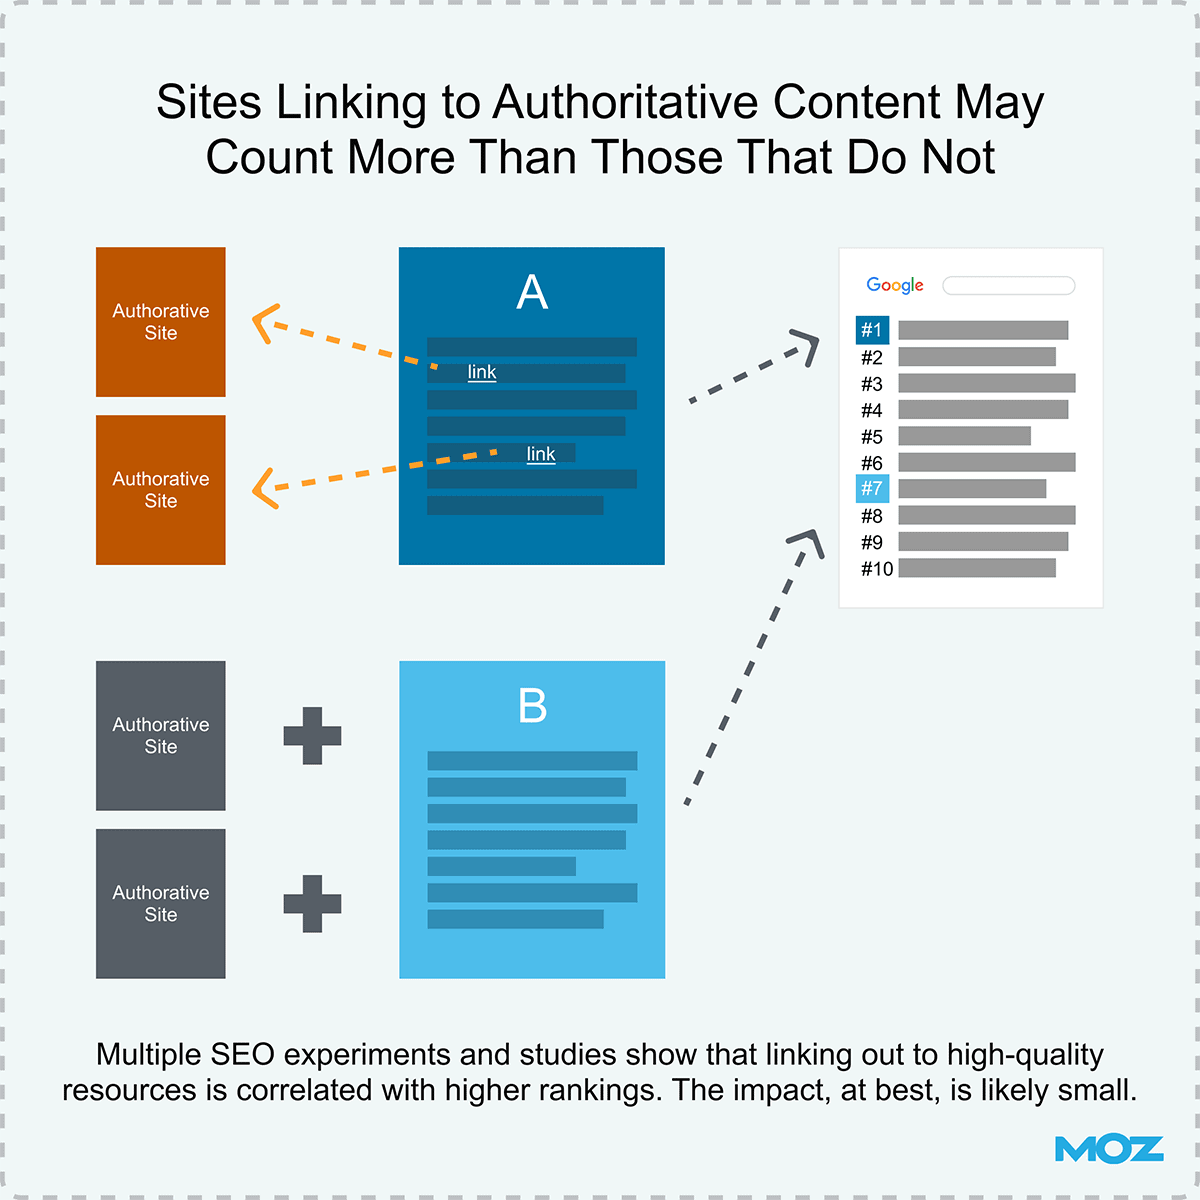 Sites linking to authoritative content may count more than those that do not